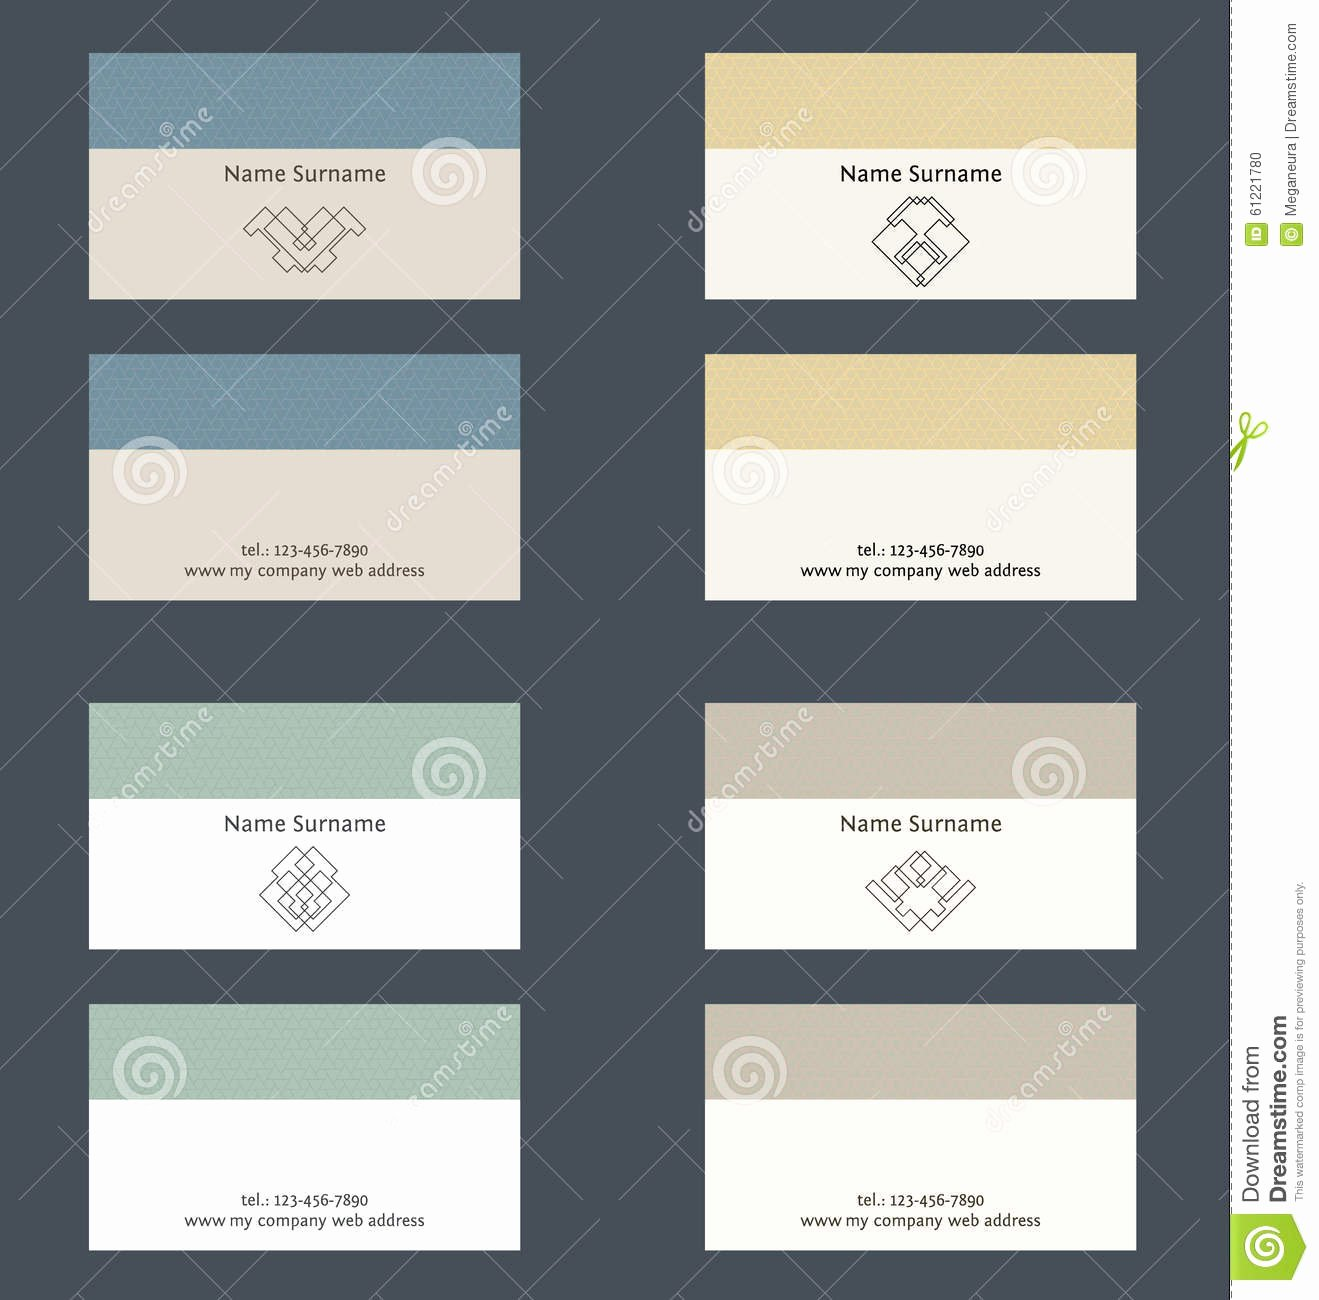 Business Card Layout Template Fresh Set Business Card Layout Linear Geometric Logo and